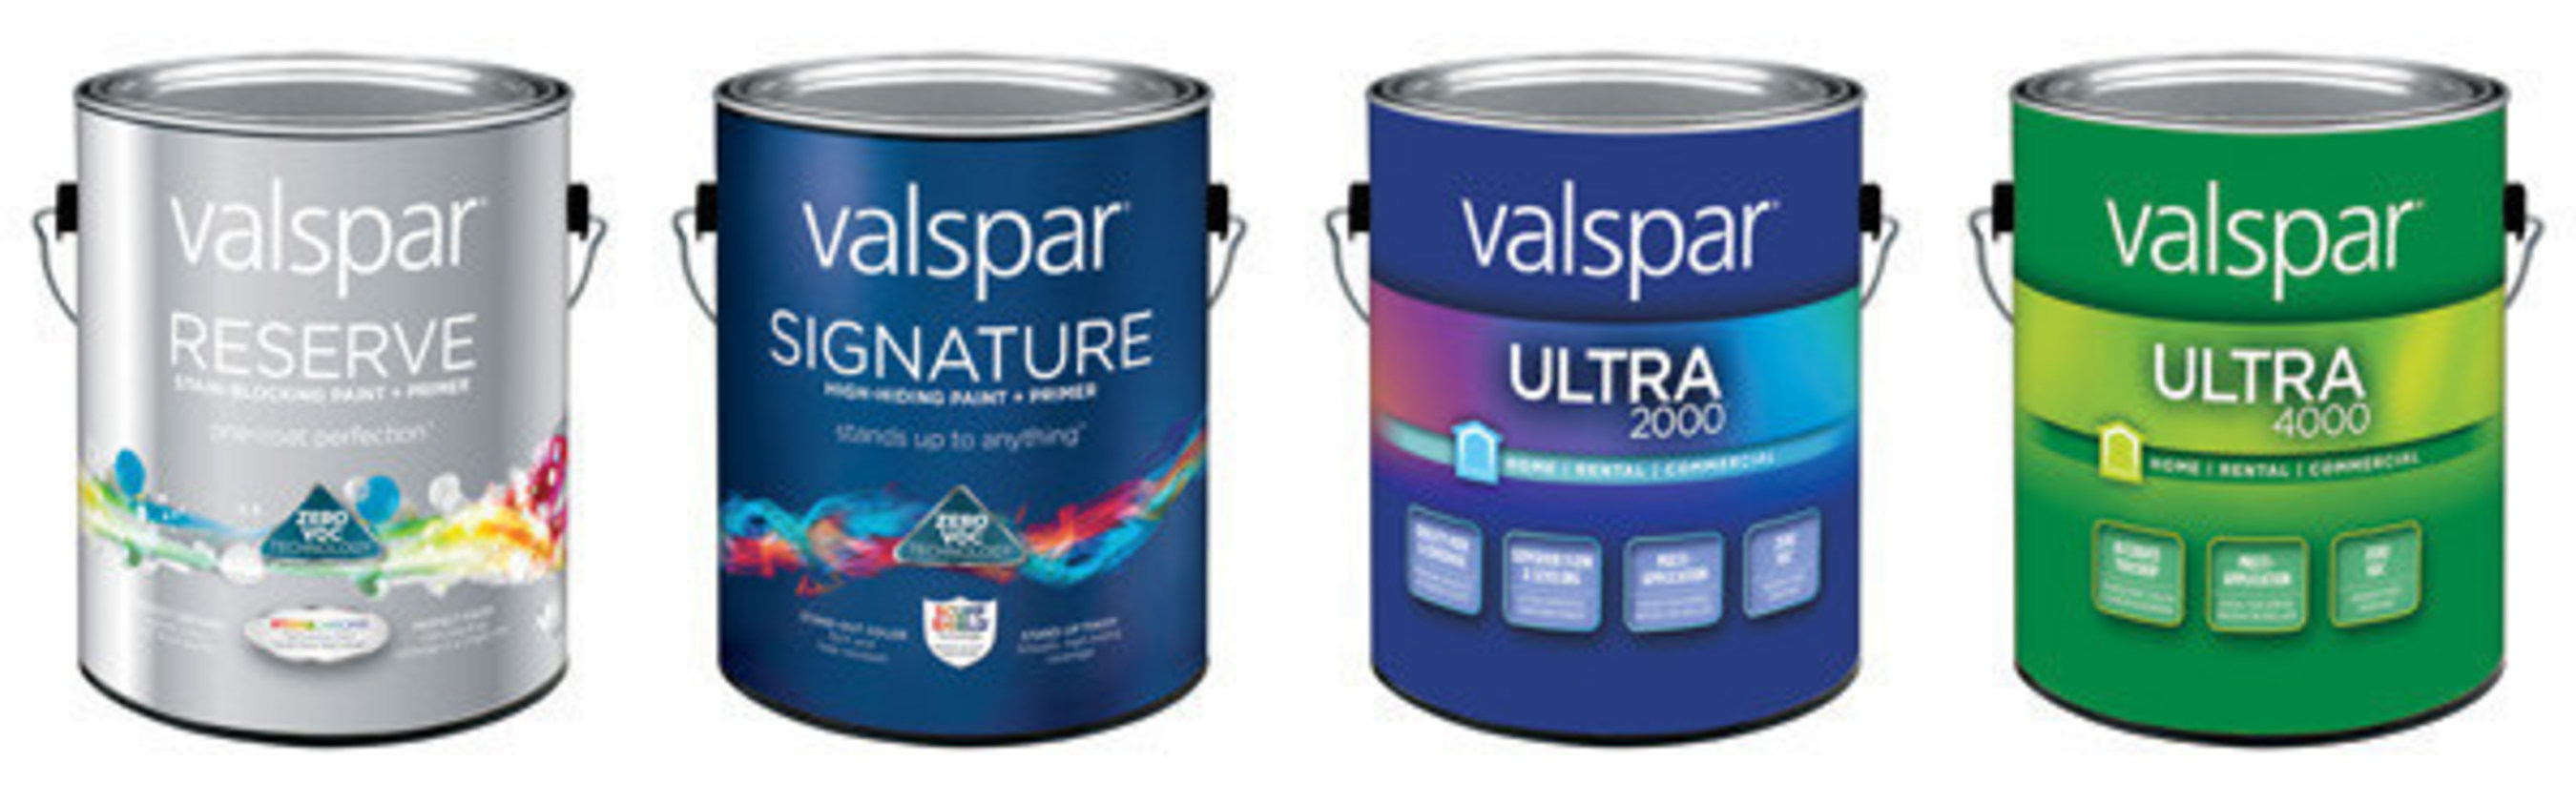 Valspar Paint Launches The Industry S Only Full Lineup Of Zero Voc Interior Paints Available